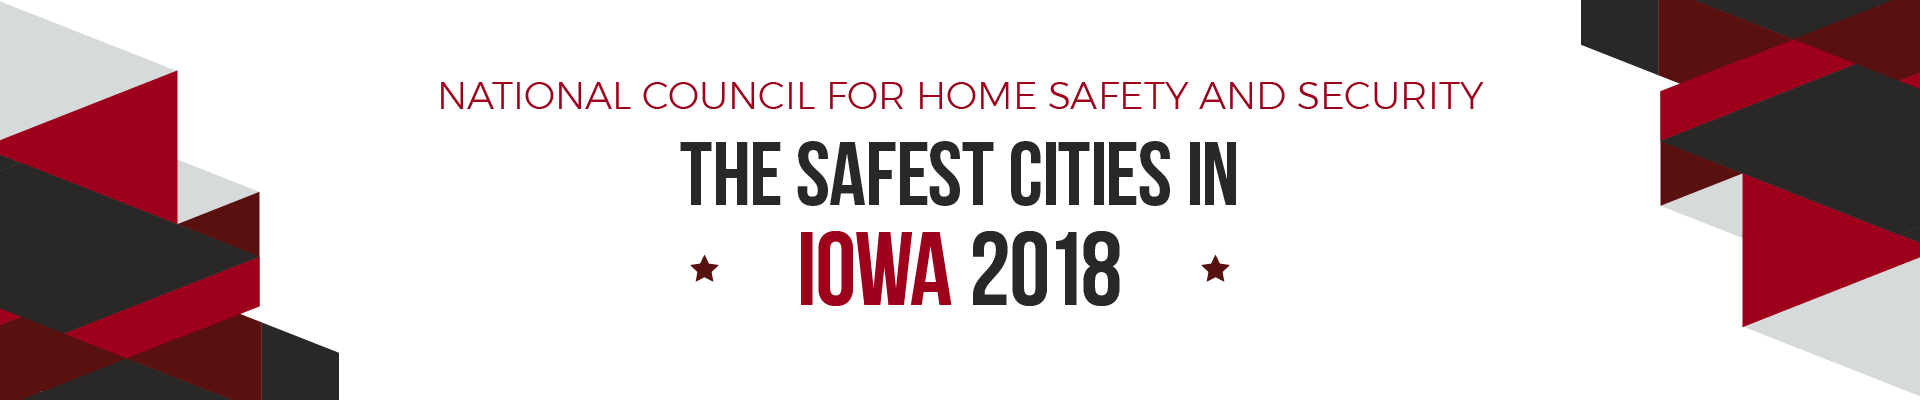 iowa safe cities 2018